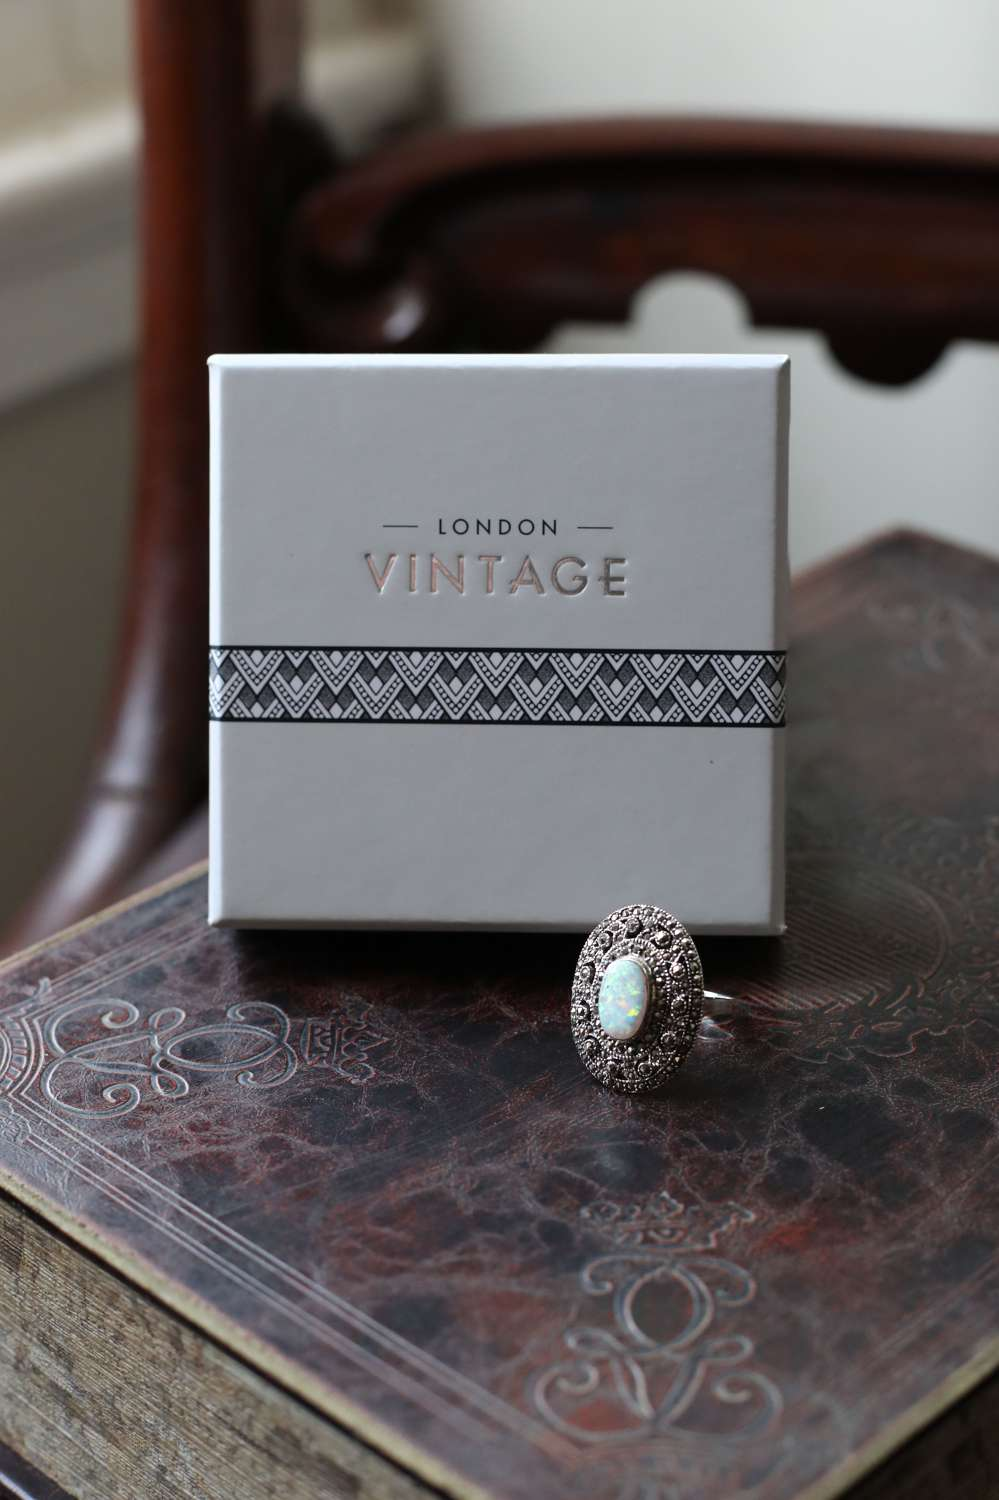 London Vintage - Sterling Silver, Marcasite Ring Set with Opalite.